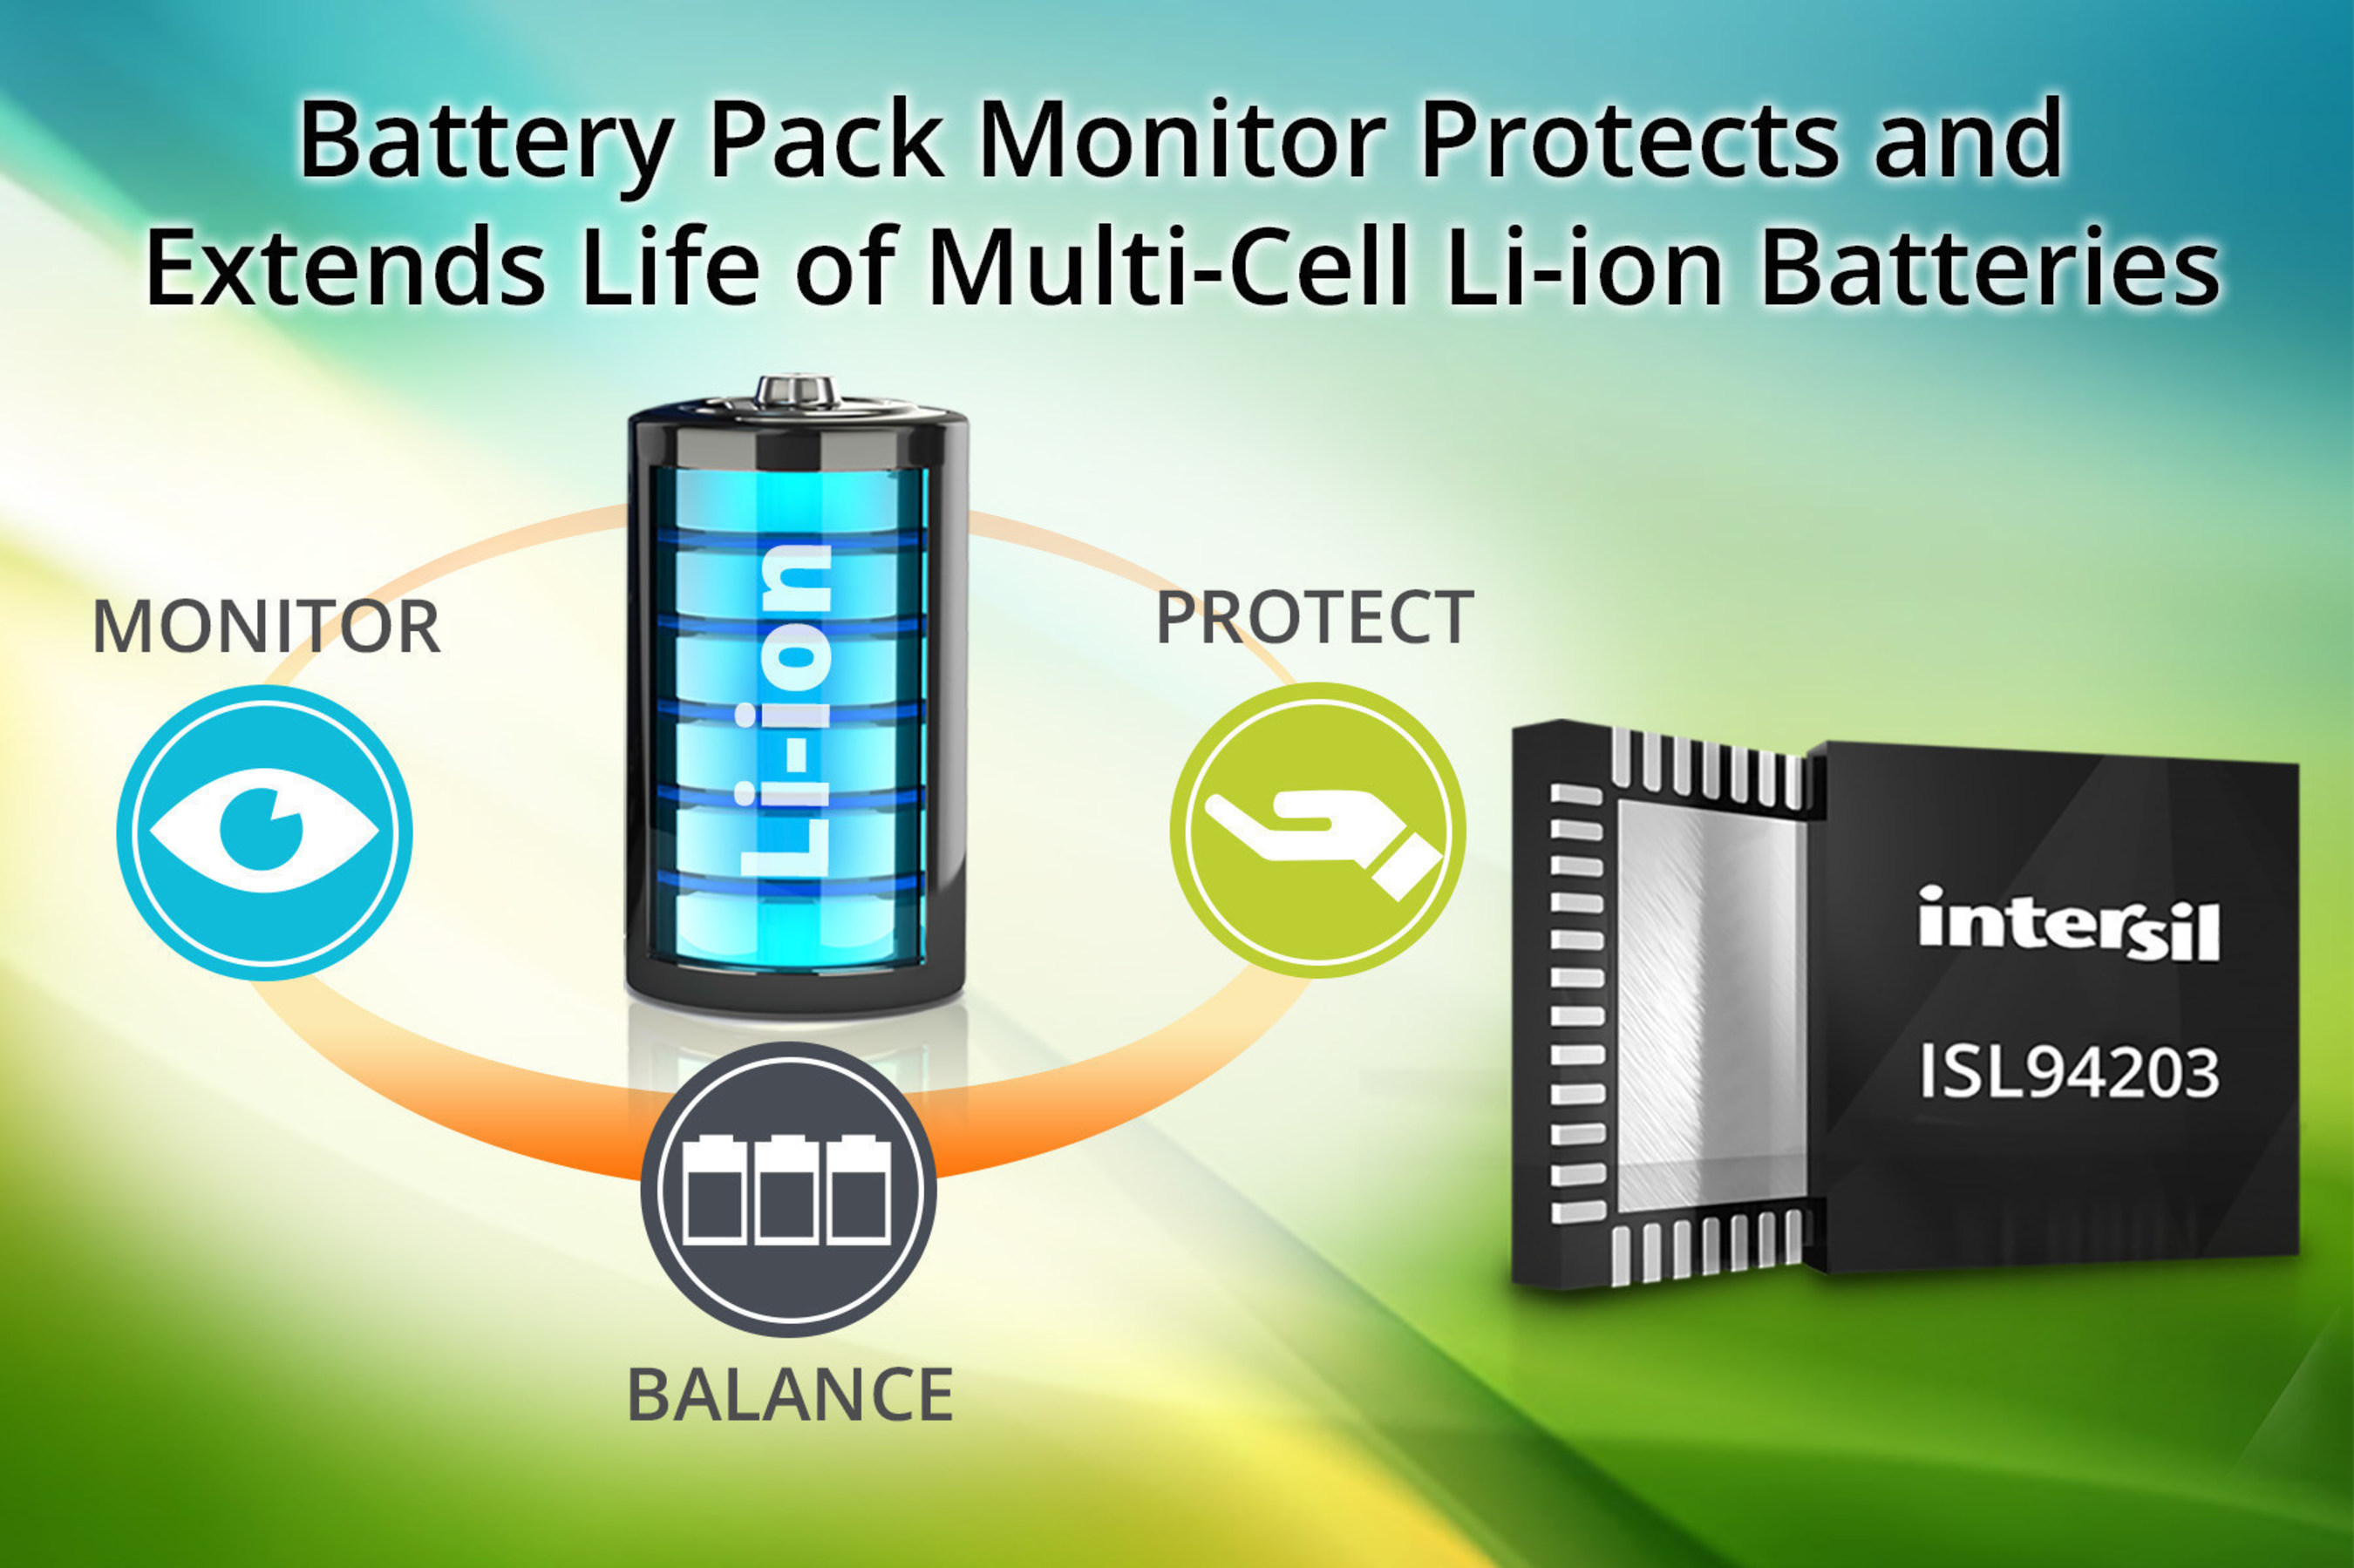 ISL94203 accurately monitors, protects and cell balances Li-ion battery packs to extend battery life.